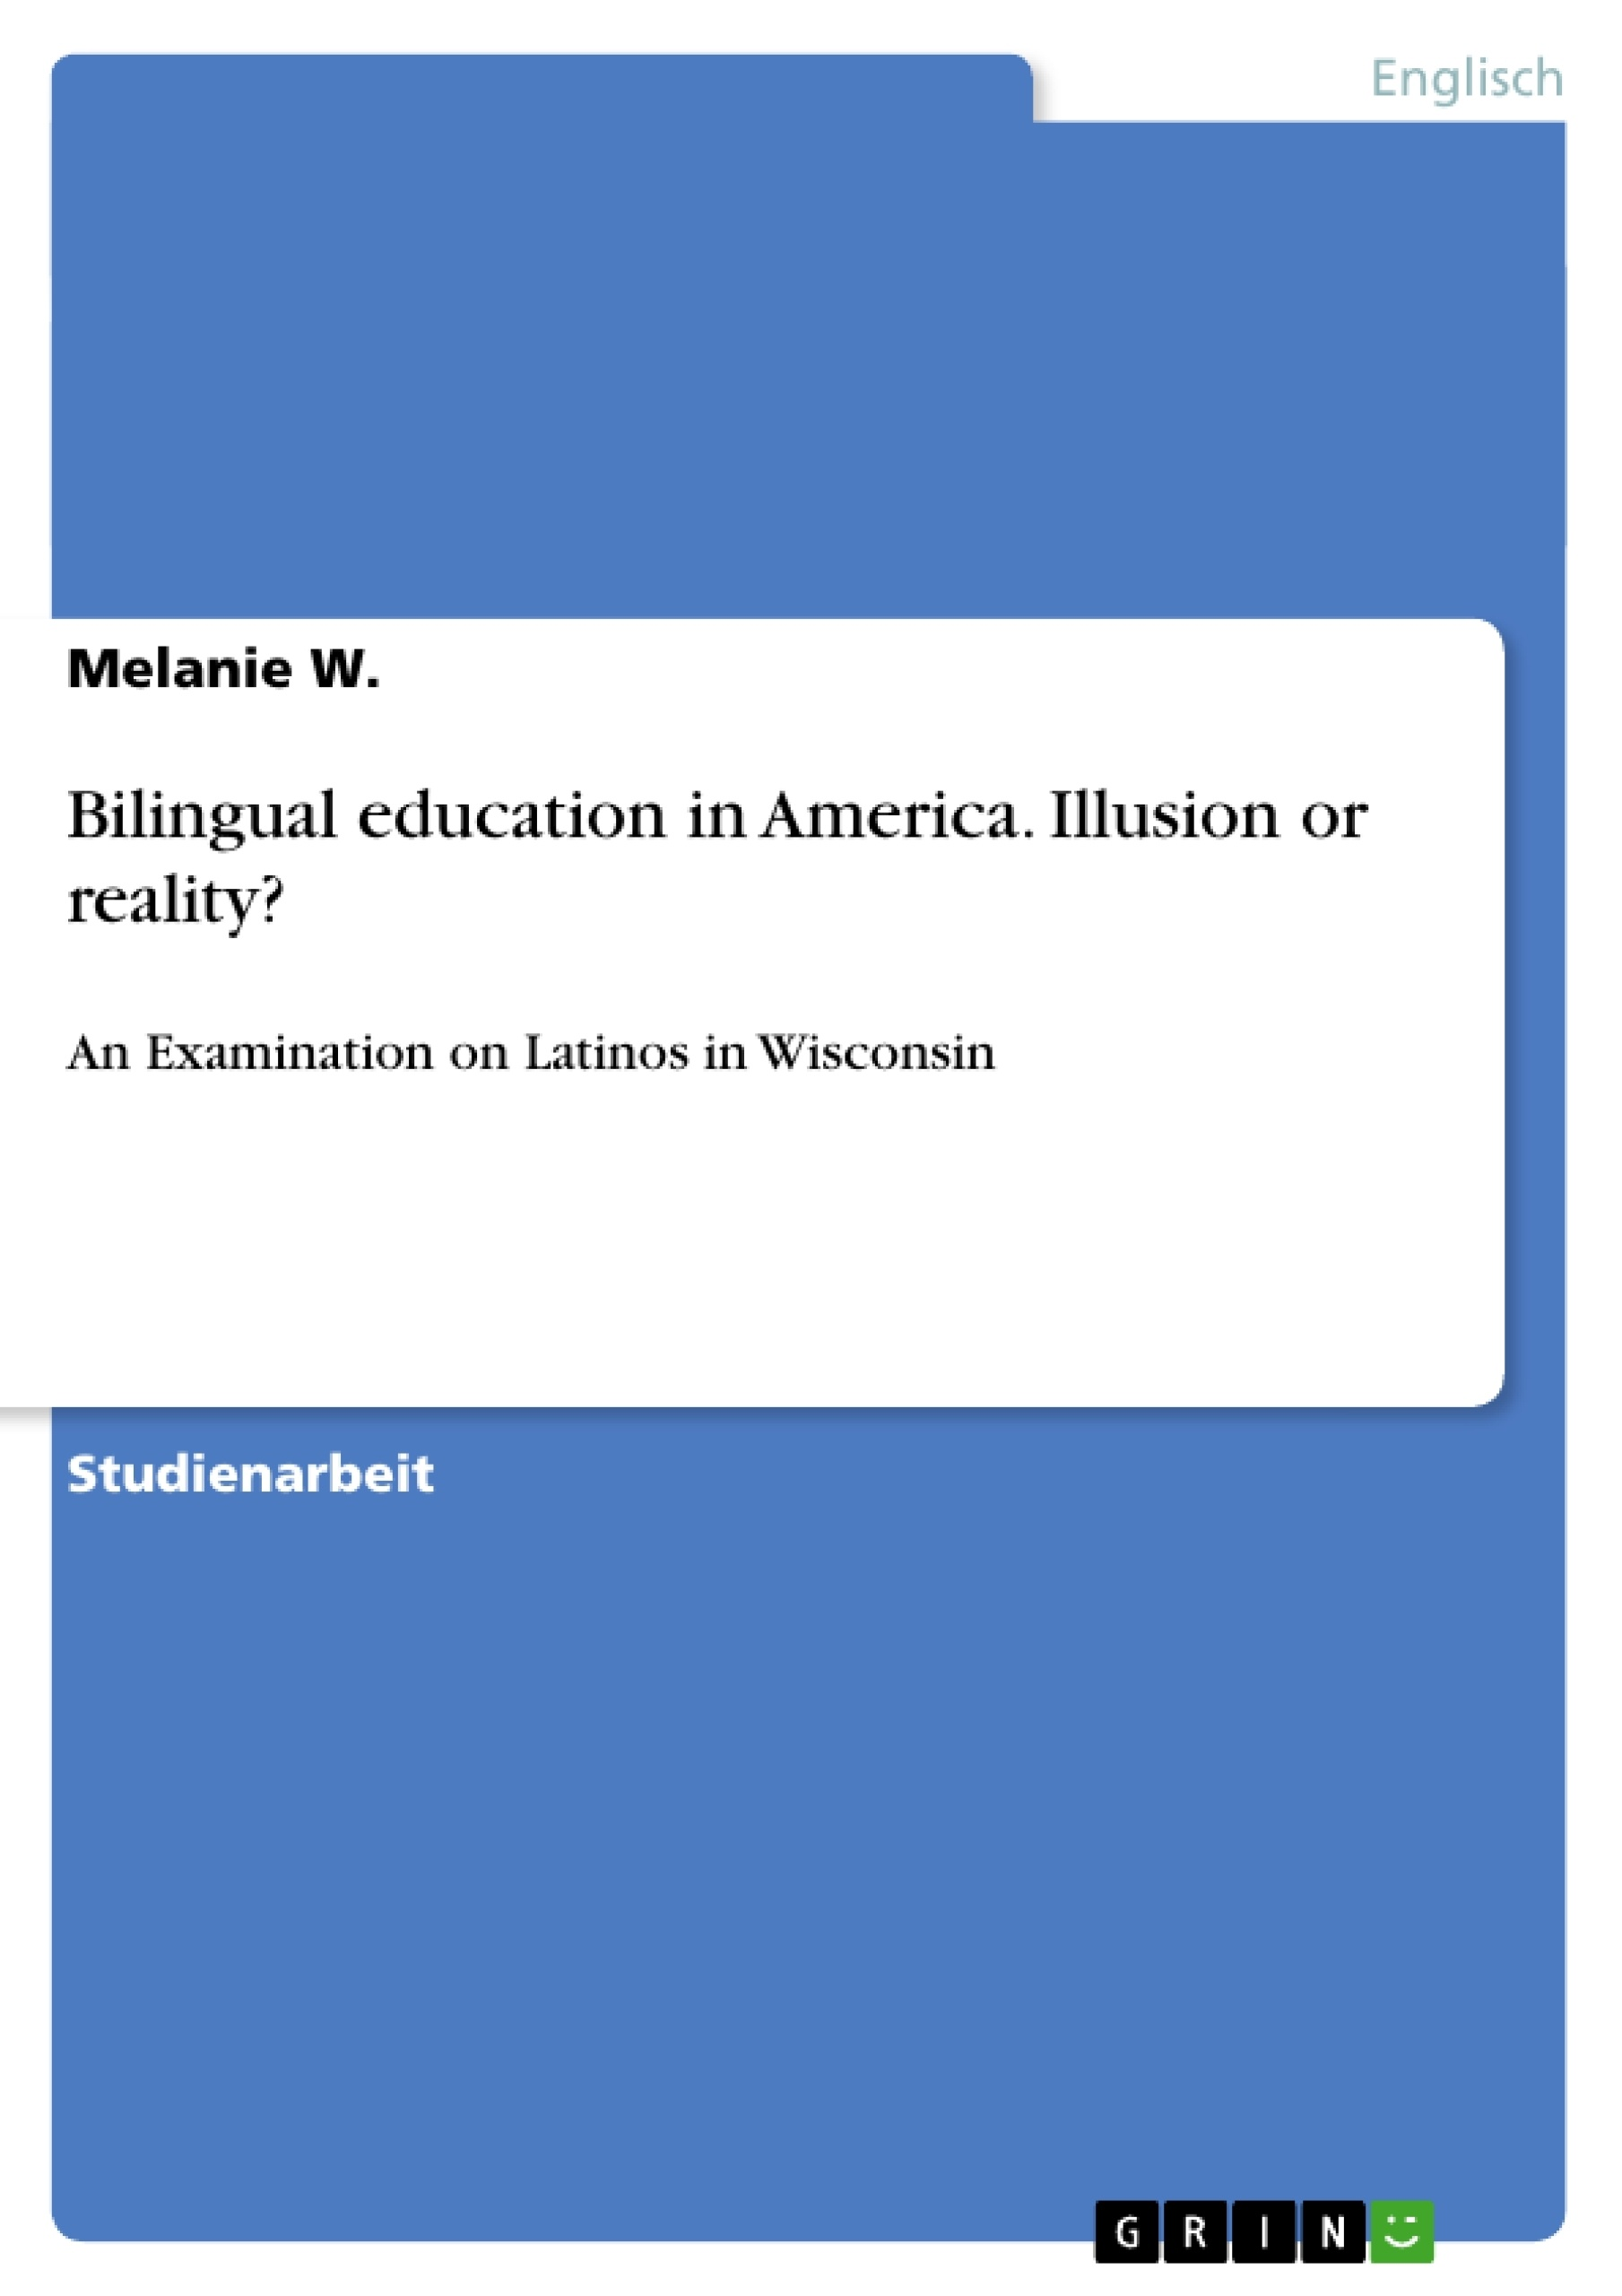 Titel: Bilingual education in America. Illusion or reality?